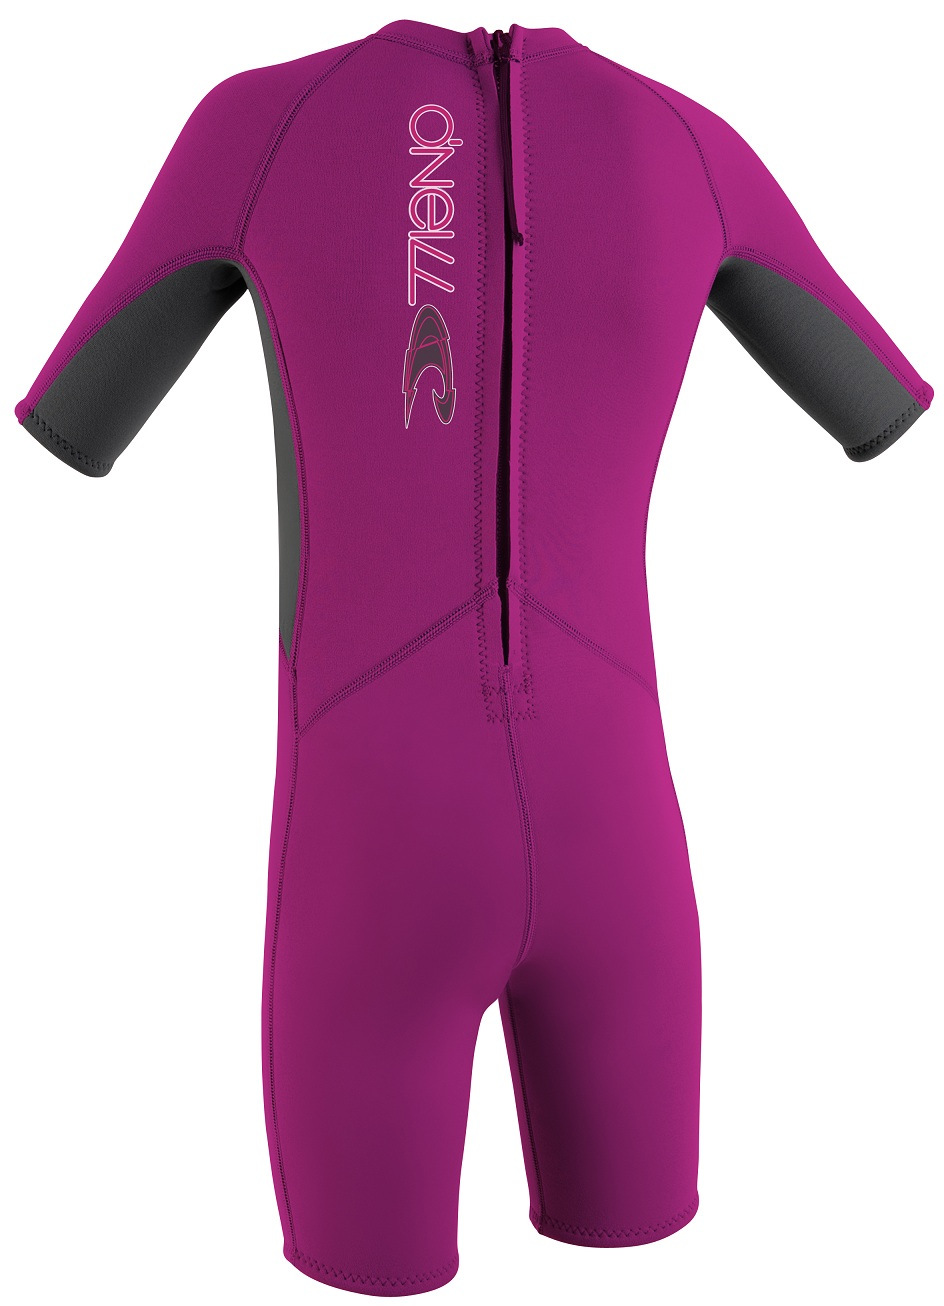 O'Neill Reactor Toddler Springsuit Wetsuit 2mm?- Pink - 3574-P31